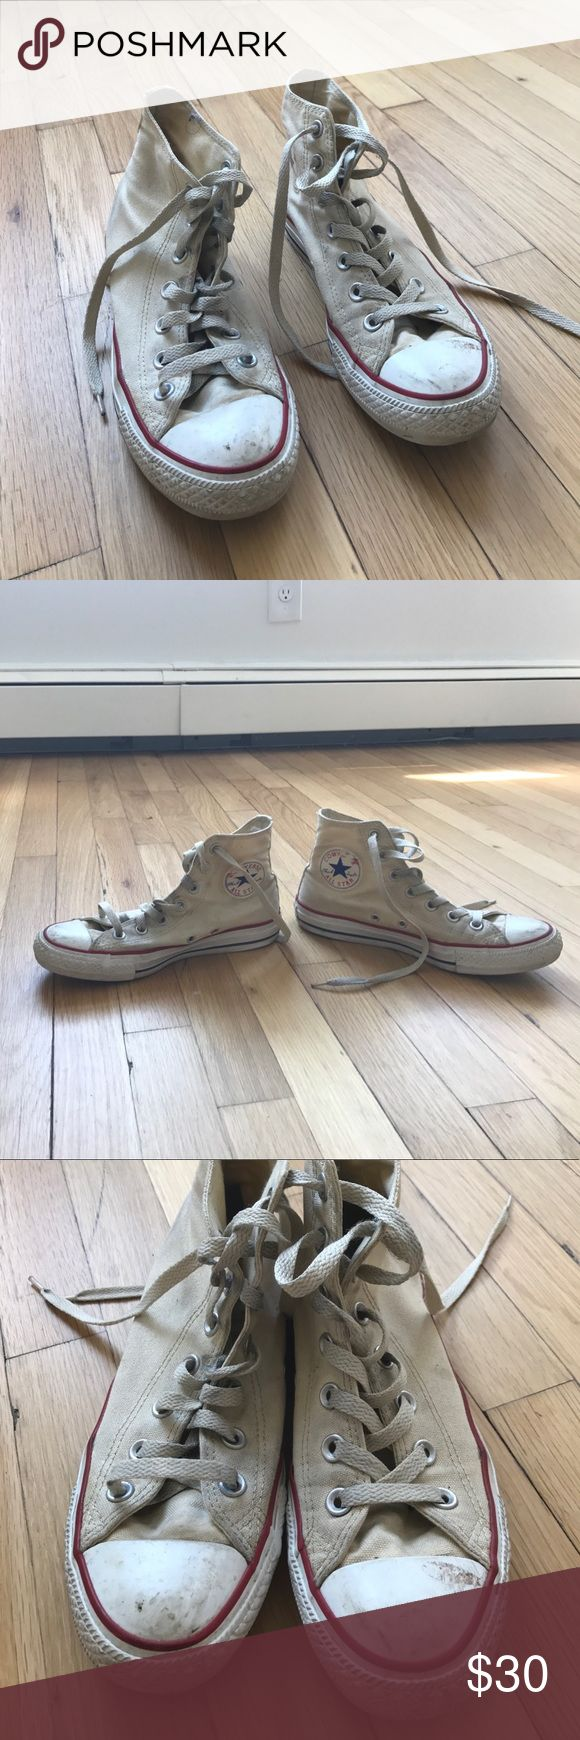 Cream Converse High Tops Size Womens 7 mens 5 Super cute sneakers for summer! Cream colored high tops women's size 7, EU size 37.5, mens size (I'm a womens size 7.5 and these fit perfectly so they run a little big) Converse Shoes Sneakers